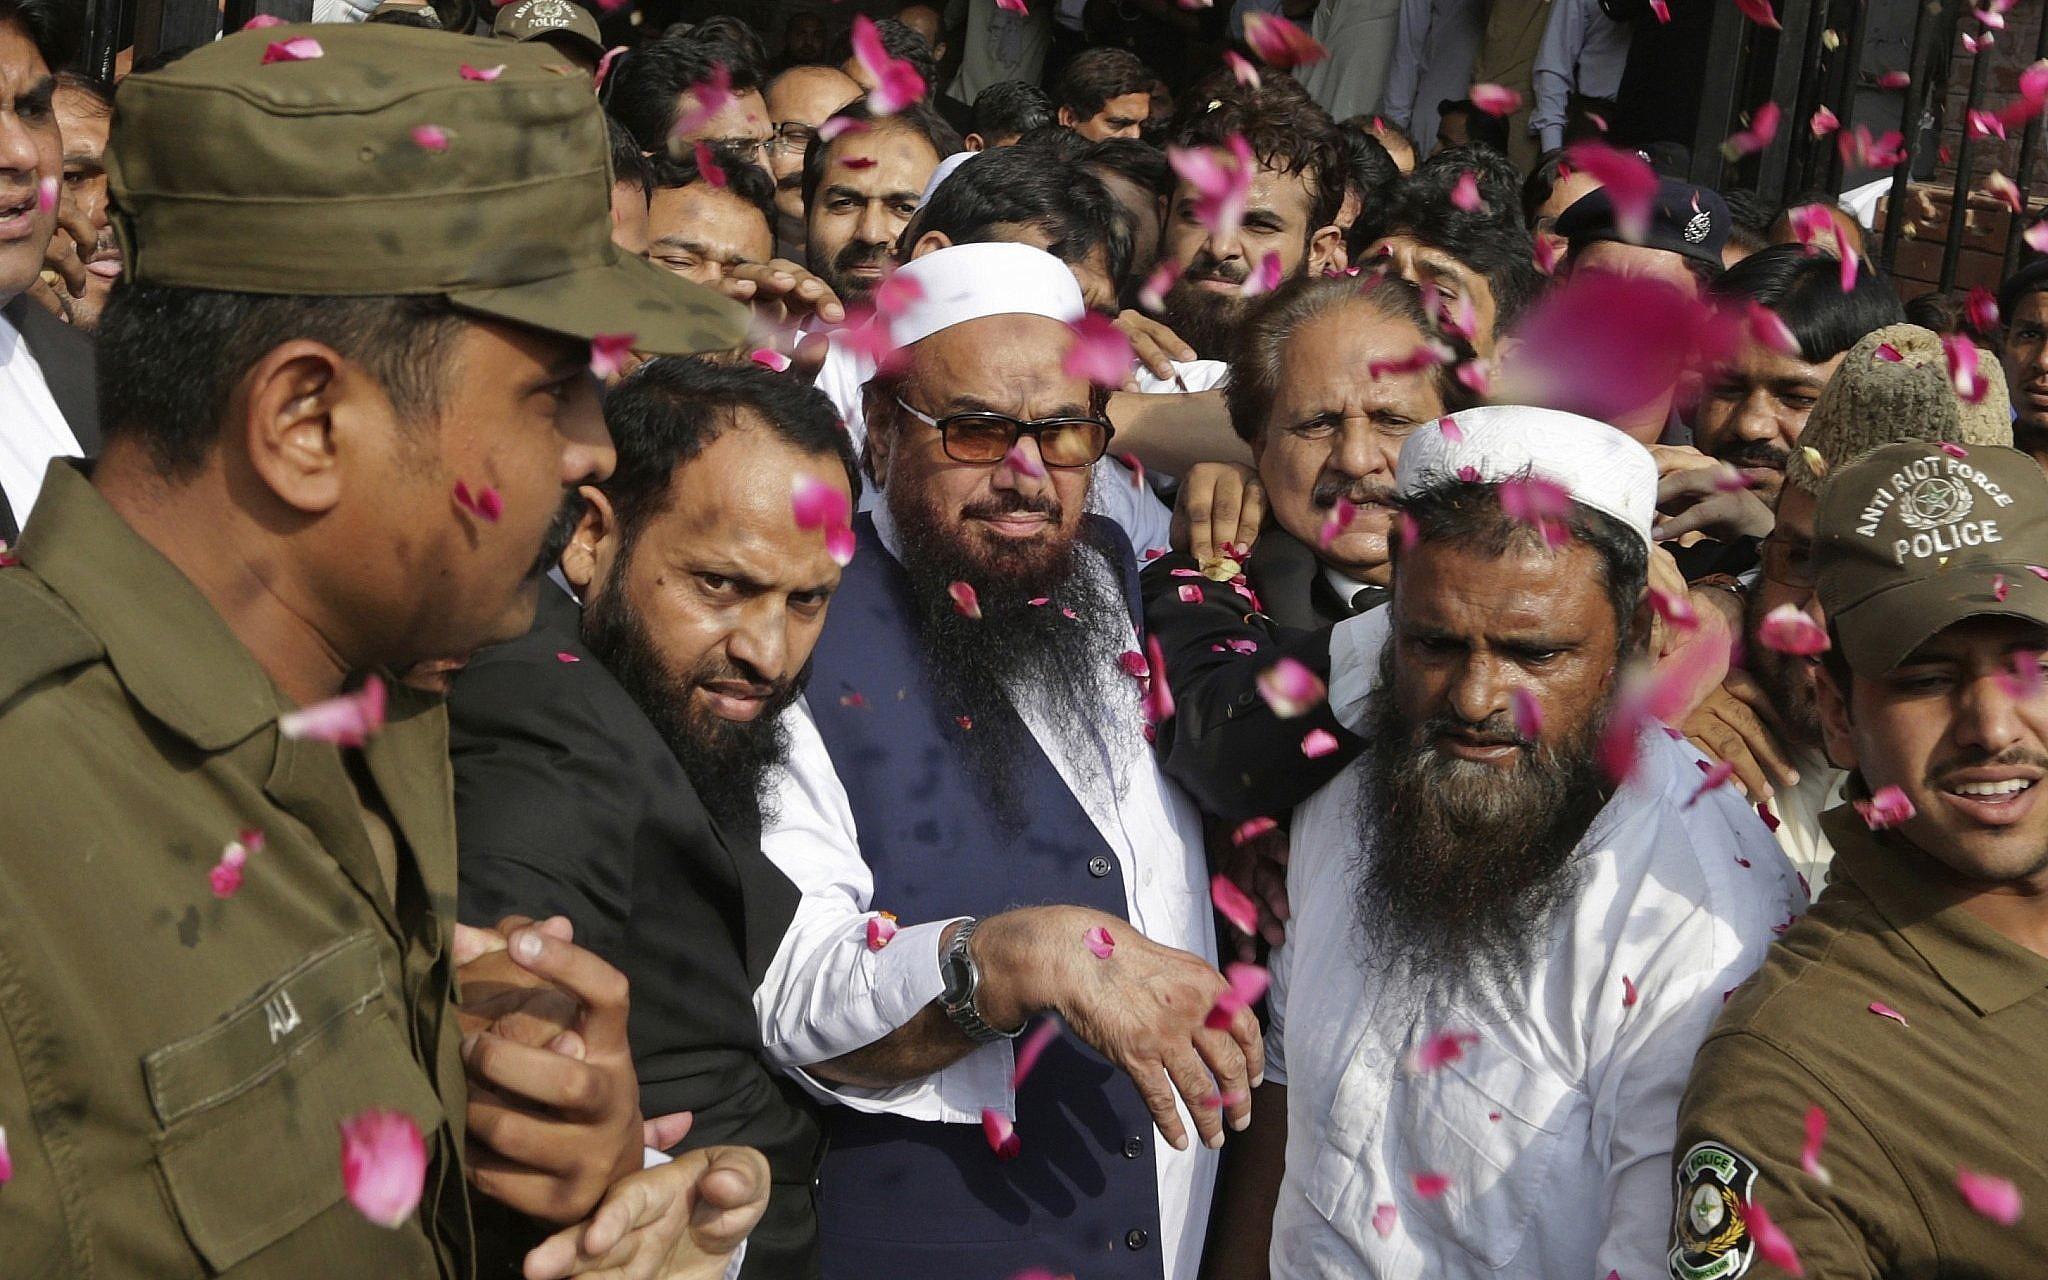 Hafiz Saeed says will challenge Pakistan govt's 'illegal' action in court